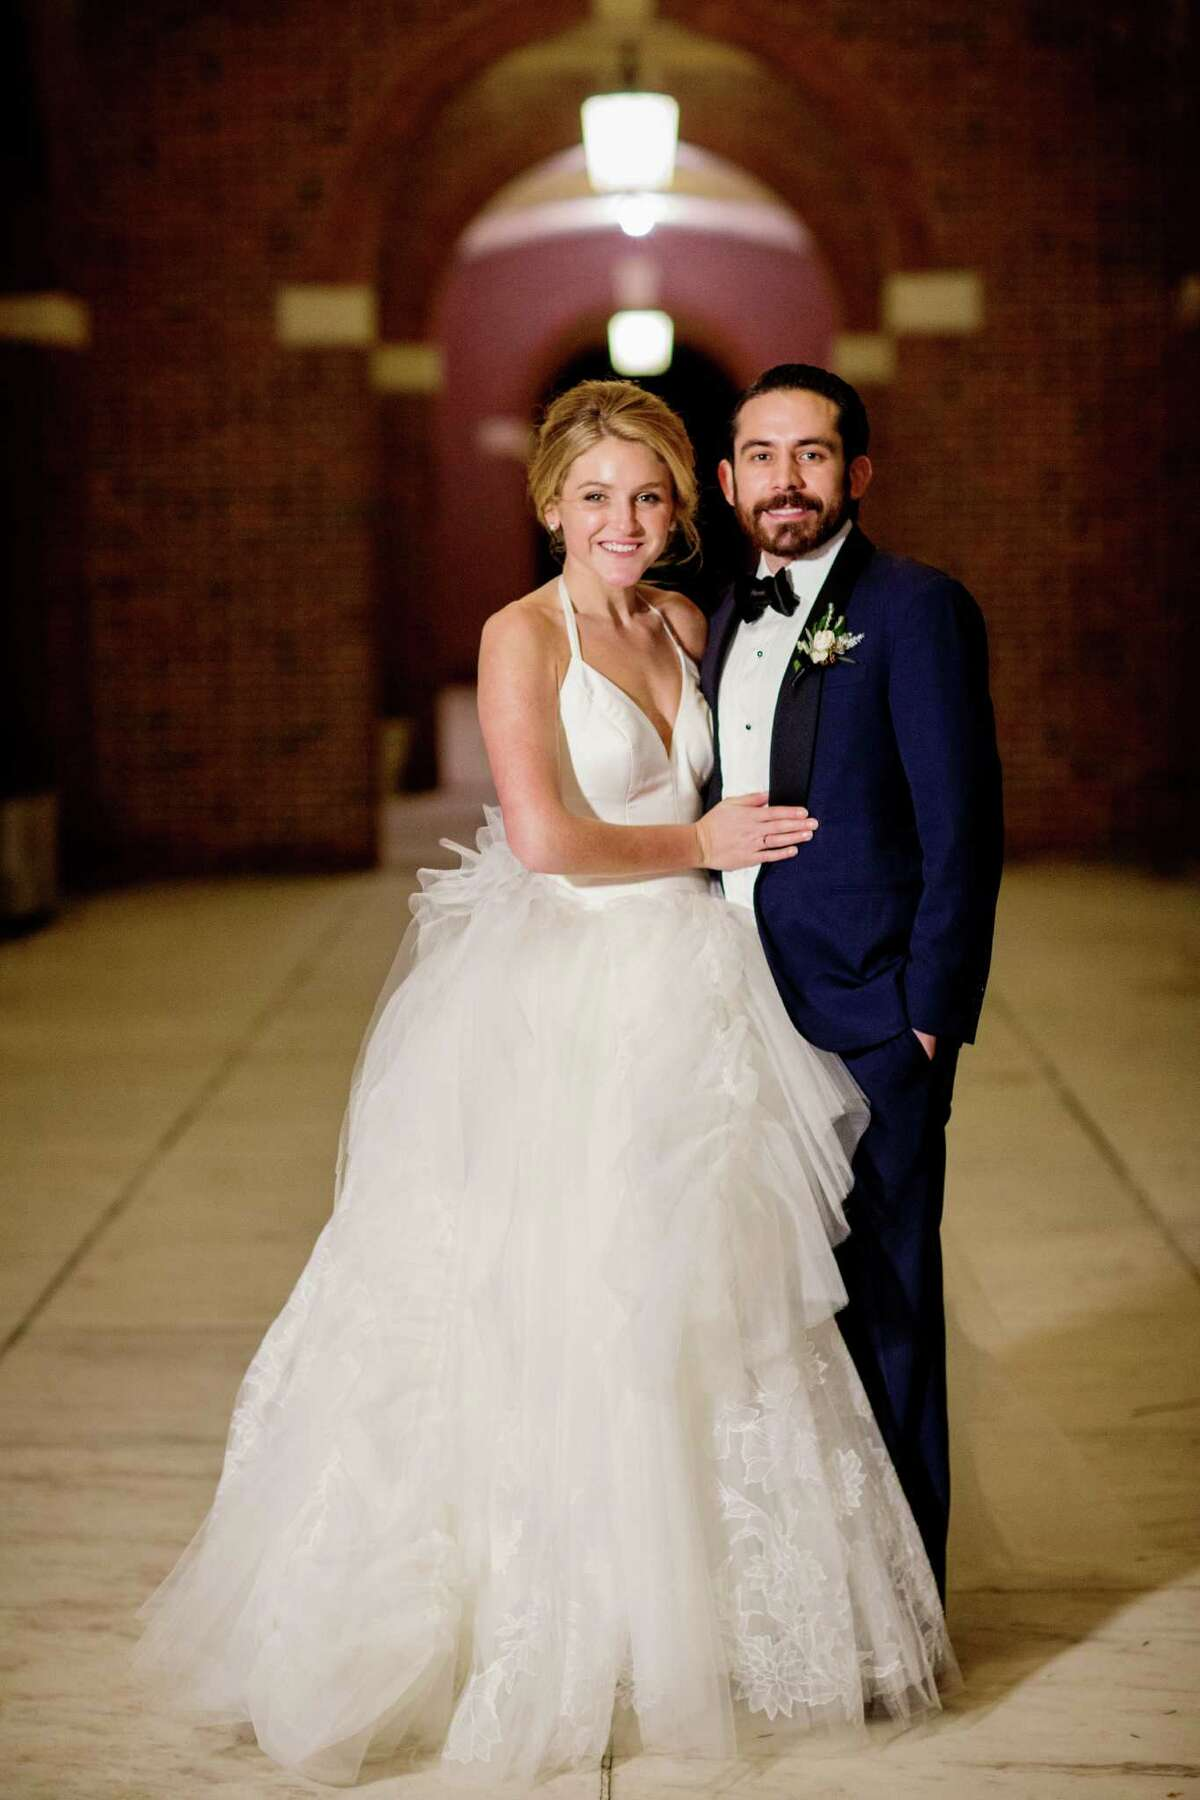 Click through the slideshow to view photos from five Capital Region weddings. Brittany and Andrew Green pose, at the Hall of Springs in Saratoga Springs, during their January 16, 2016 nuptials. Learn more about their wedding. (Tracey Buyce Photography)